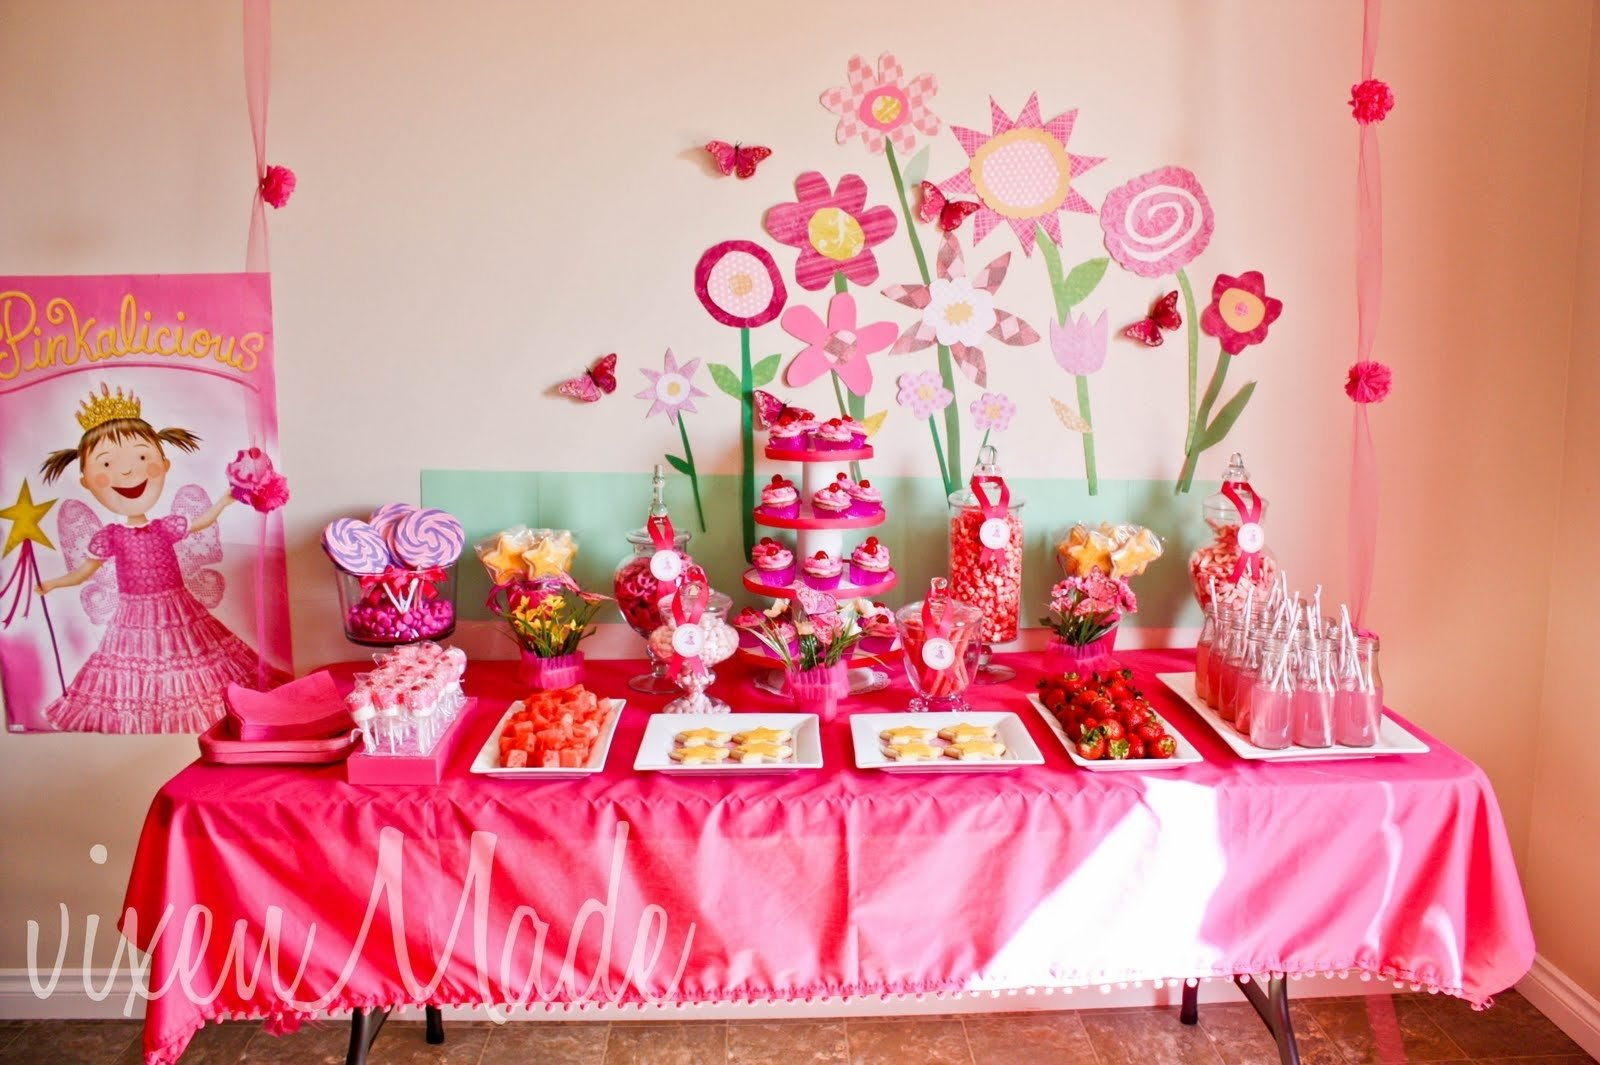 10 Most Popular Girl Themed Birthday Party Ideas